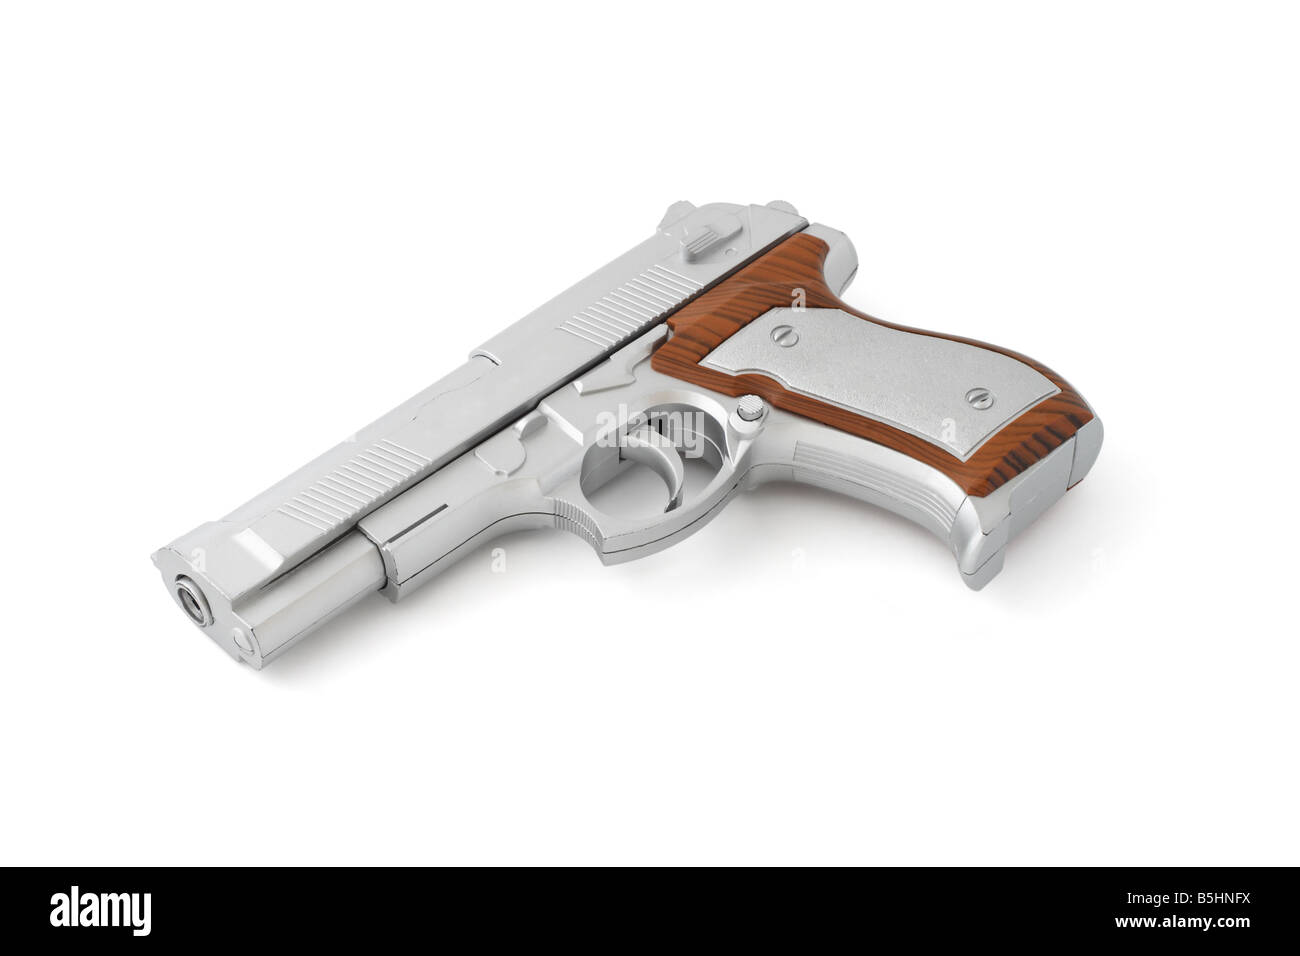 Toy gun isolated on white background - Stock Image